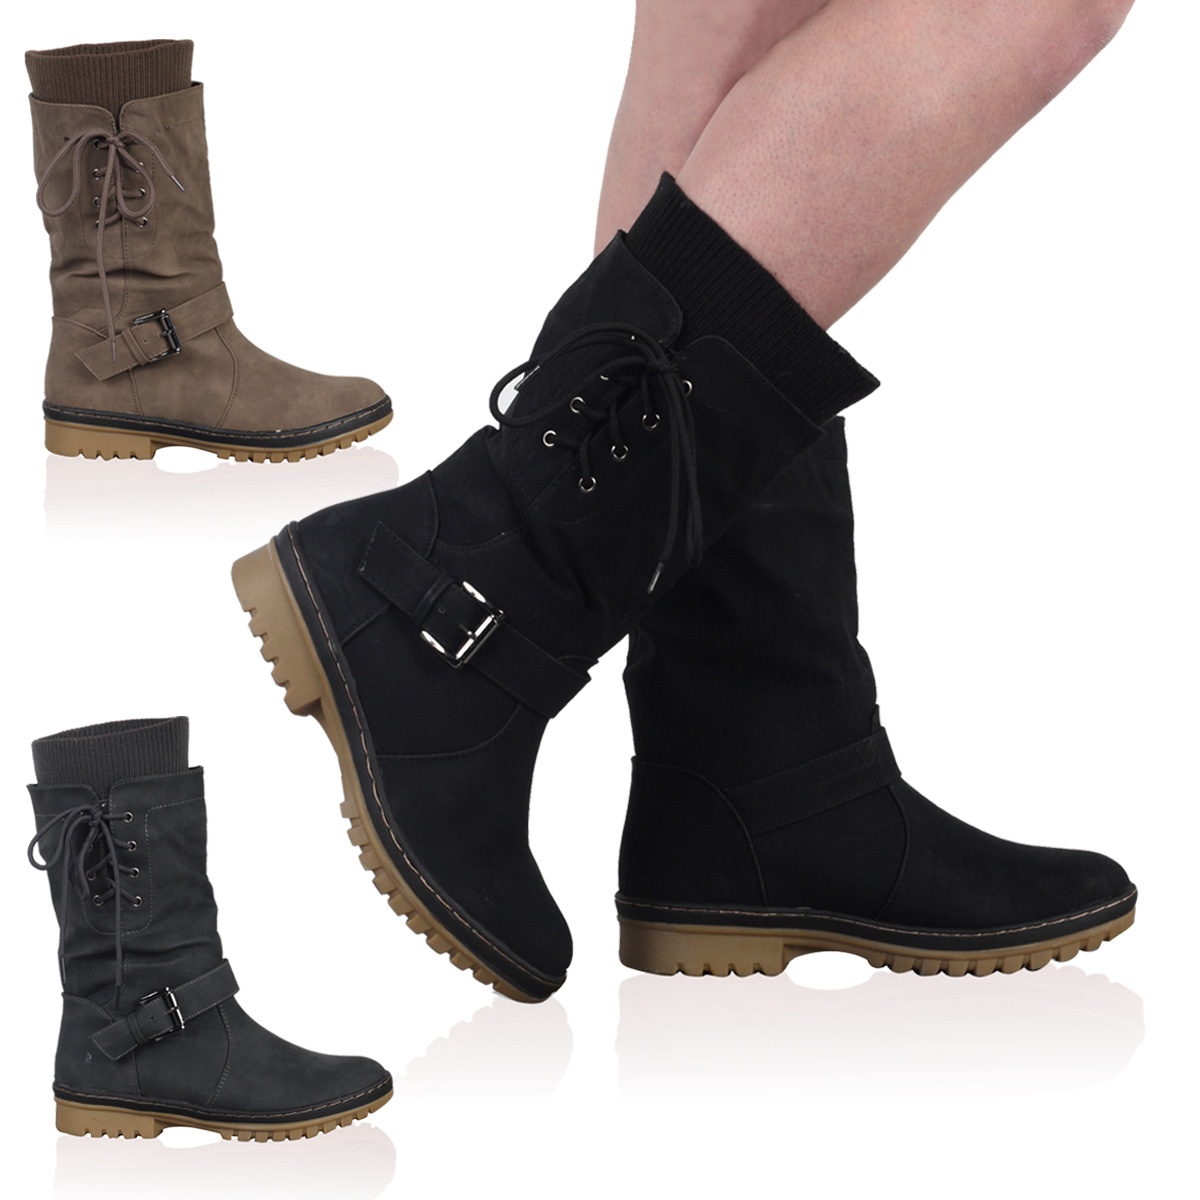 new faux leather womens winter snow grip calf